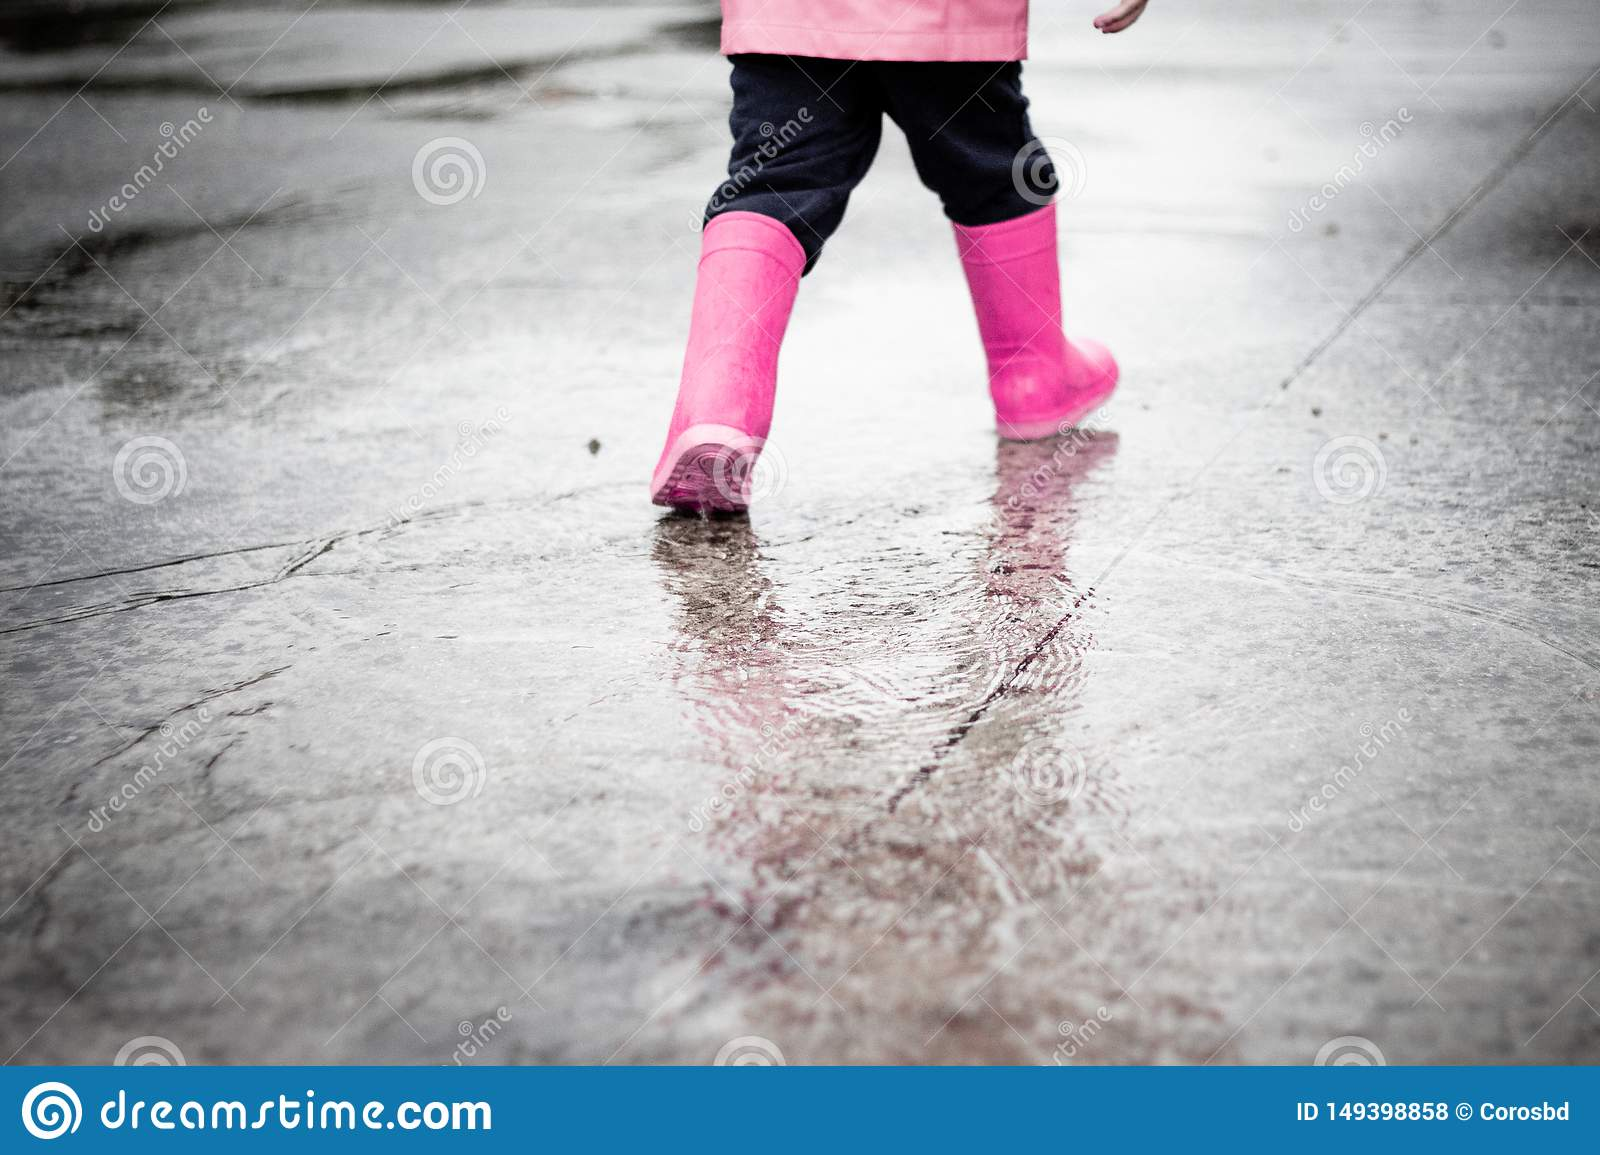 Child dressed in pink clothes jumping in puddles